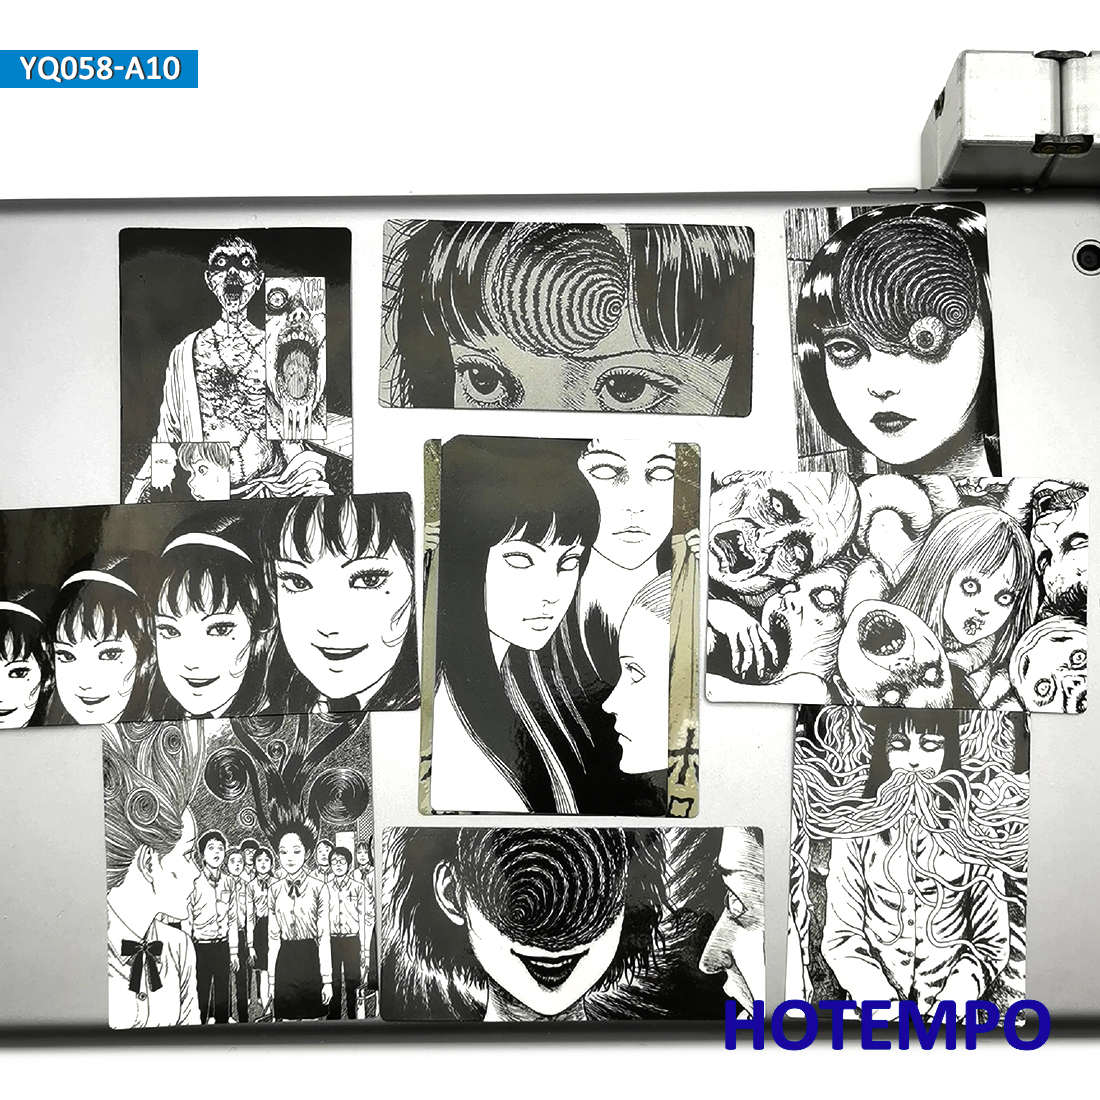 10pcs Terror Manga Art Stickers Junji Itou Kawakami Tomie Spiral For Mobile Phone Laptop Luggage Skateboard Horror Comic Sticker